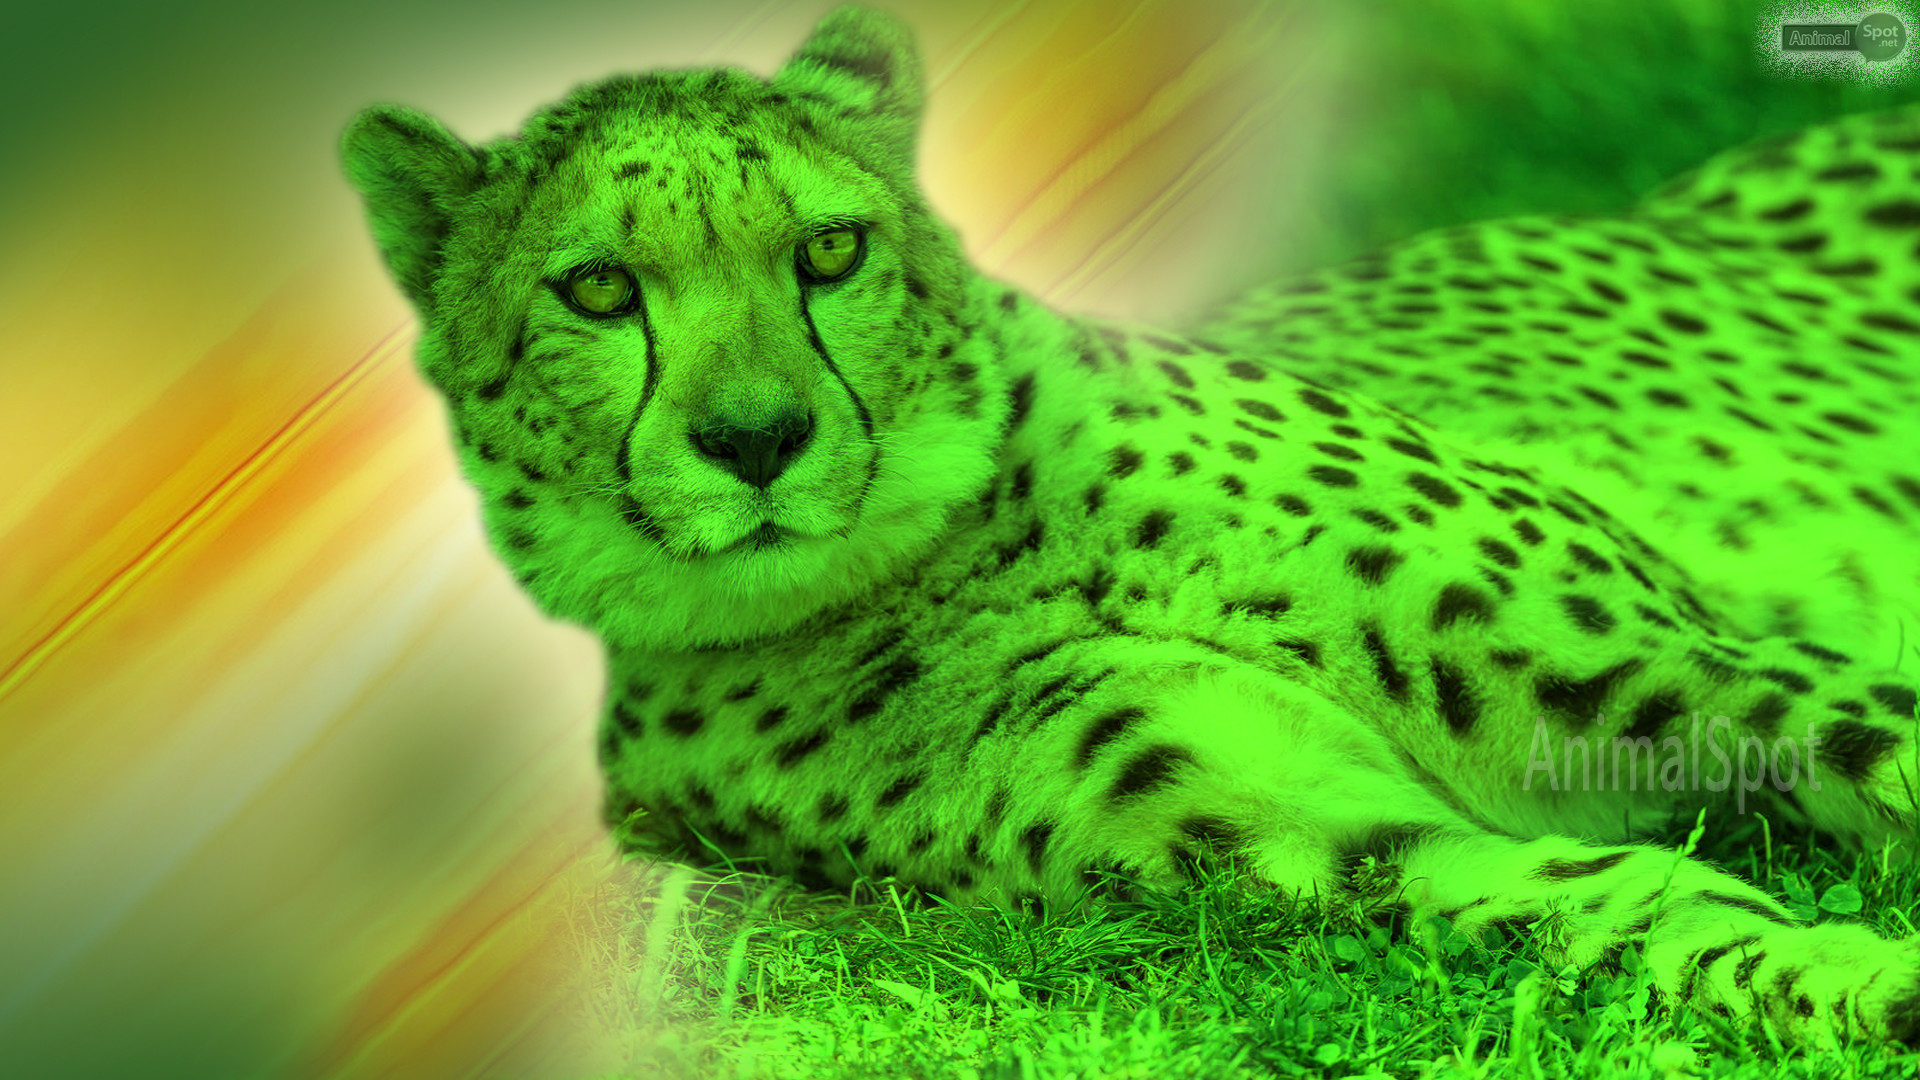 Res: 1920x1080, Best Cheetah Wallpapers and Backgrounds